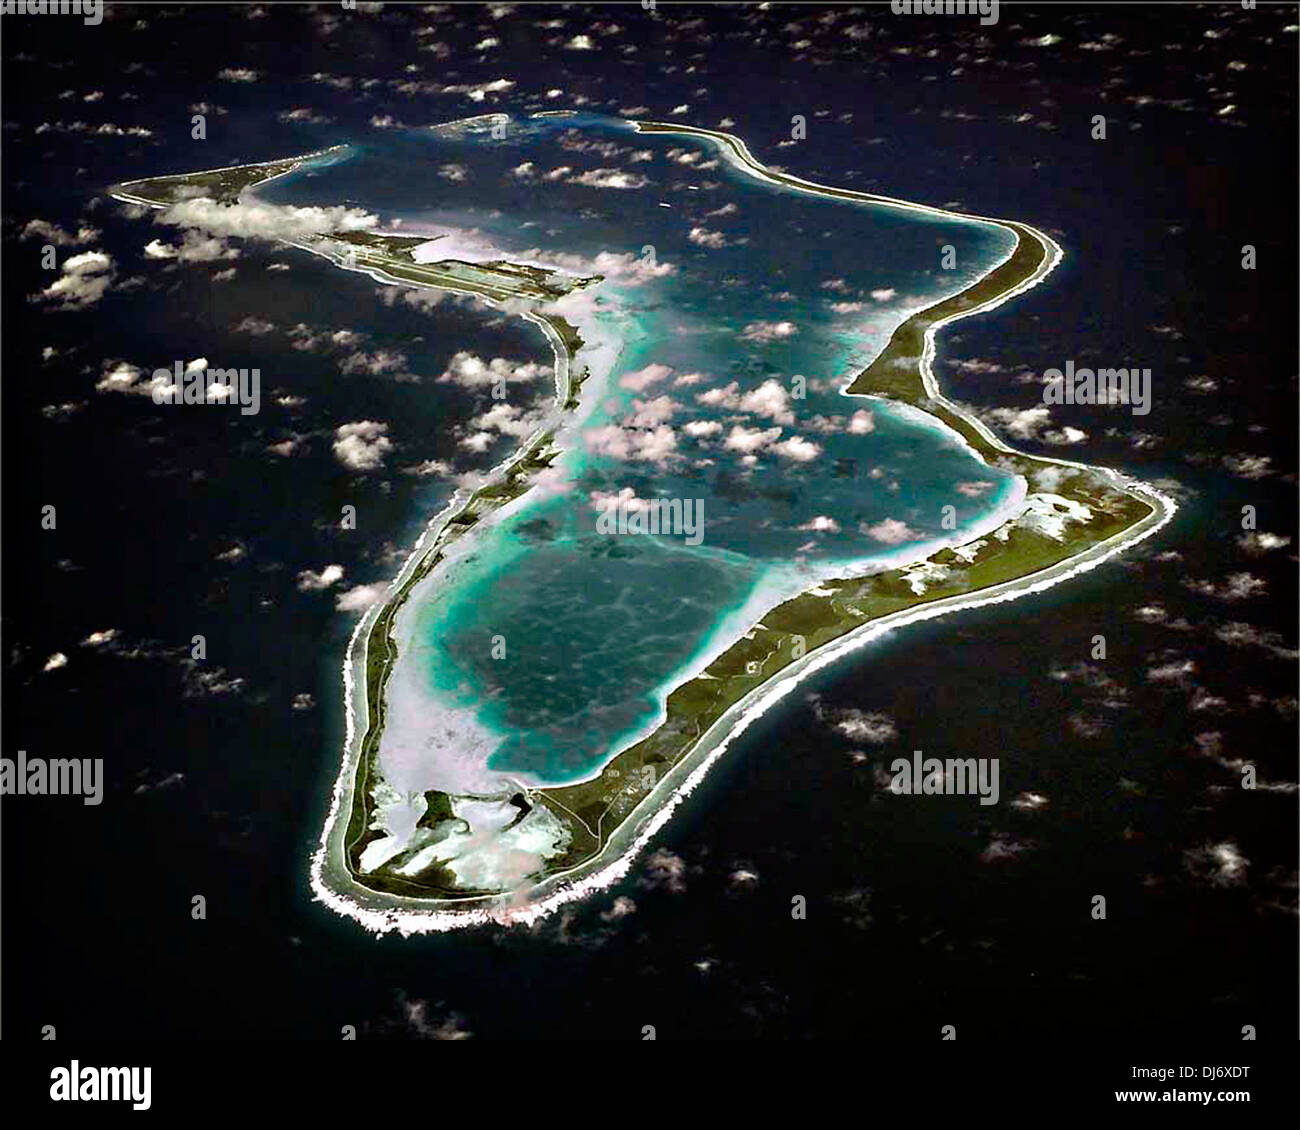 An aerial view of the British Indian Ocean Territory island of Diego Garcia November 22, 2013. - Stock Image